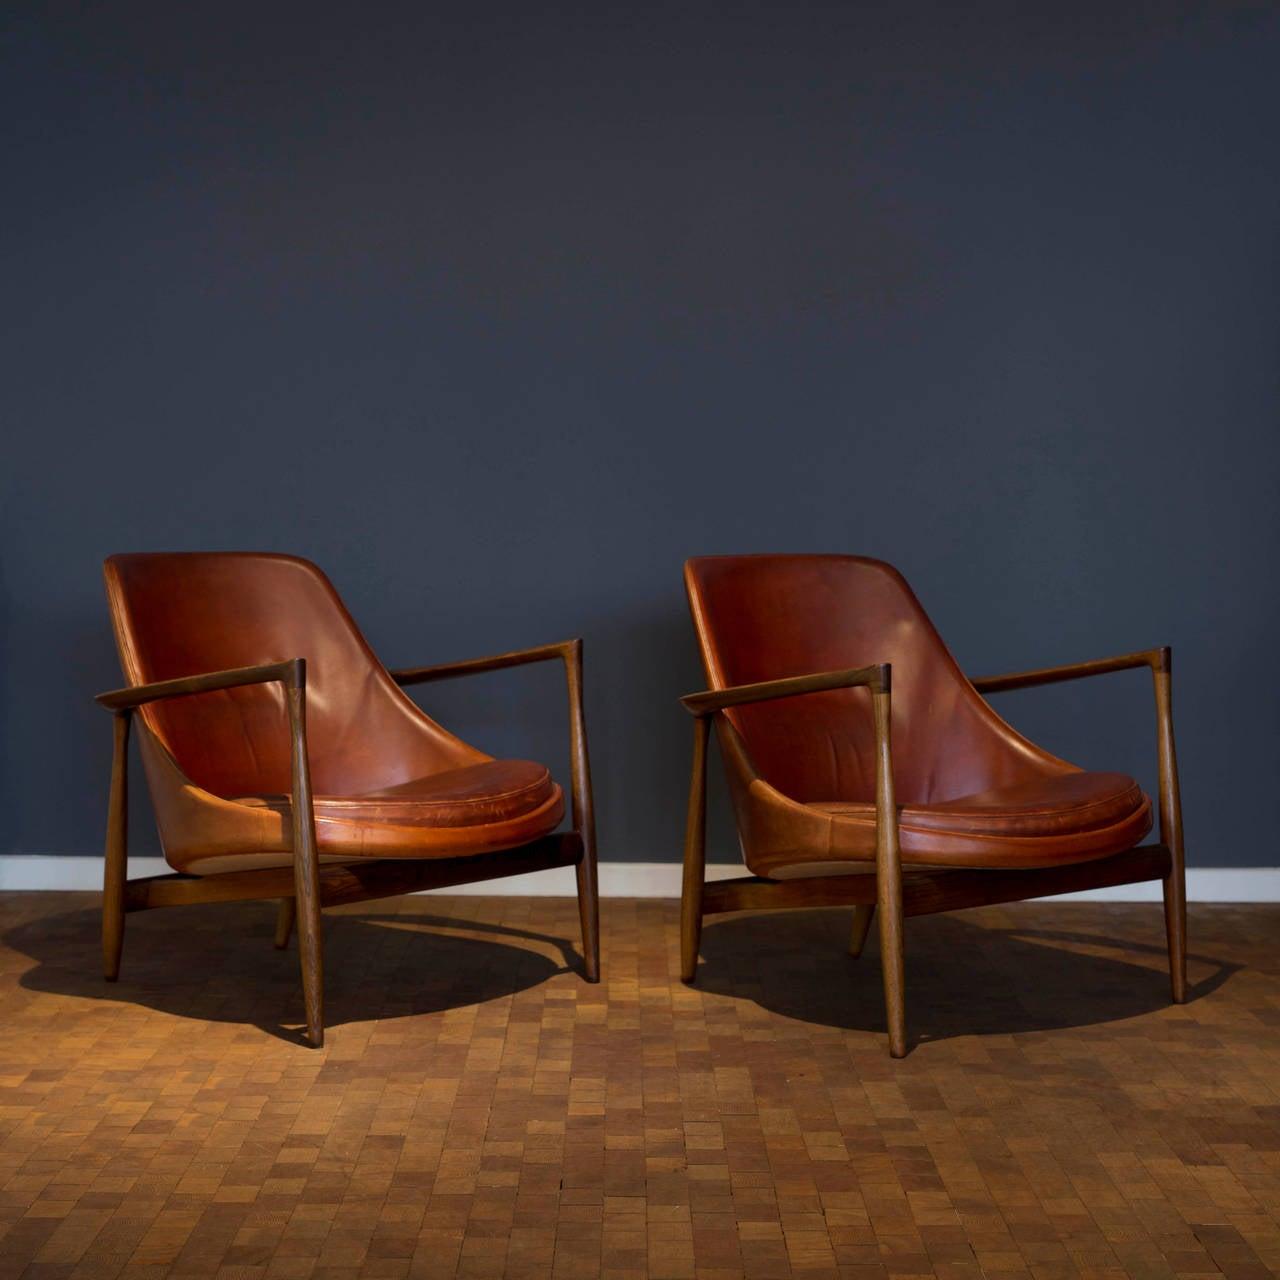 This sculptural pair of lounge chairs by ib kofod larsen is no longer - Pair Of Ib Kofod Larsen Rosewood Elizabeth Chairs For Christensen And Larsen 2